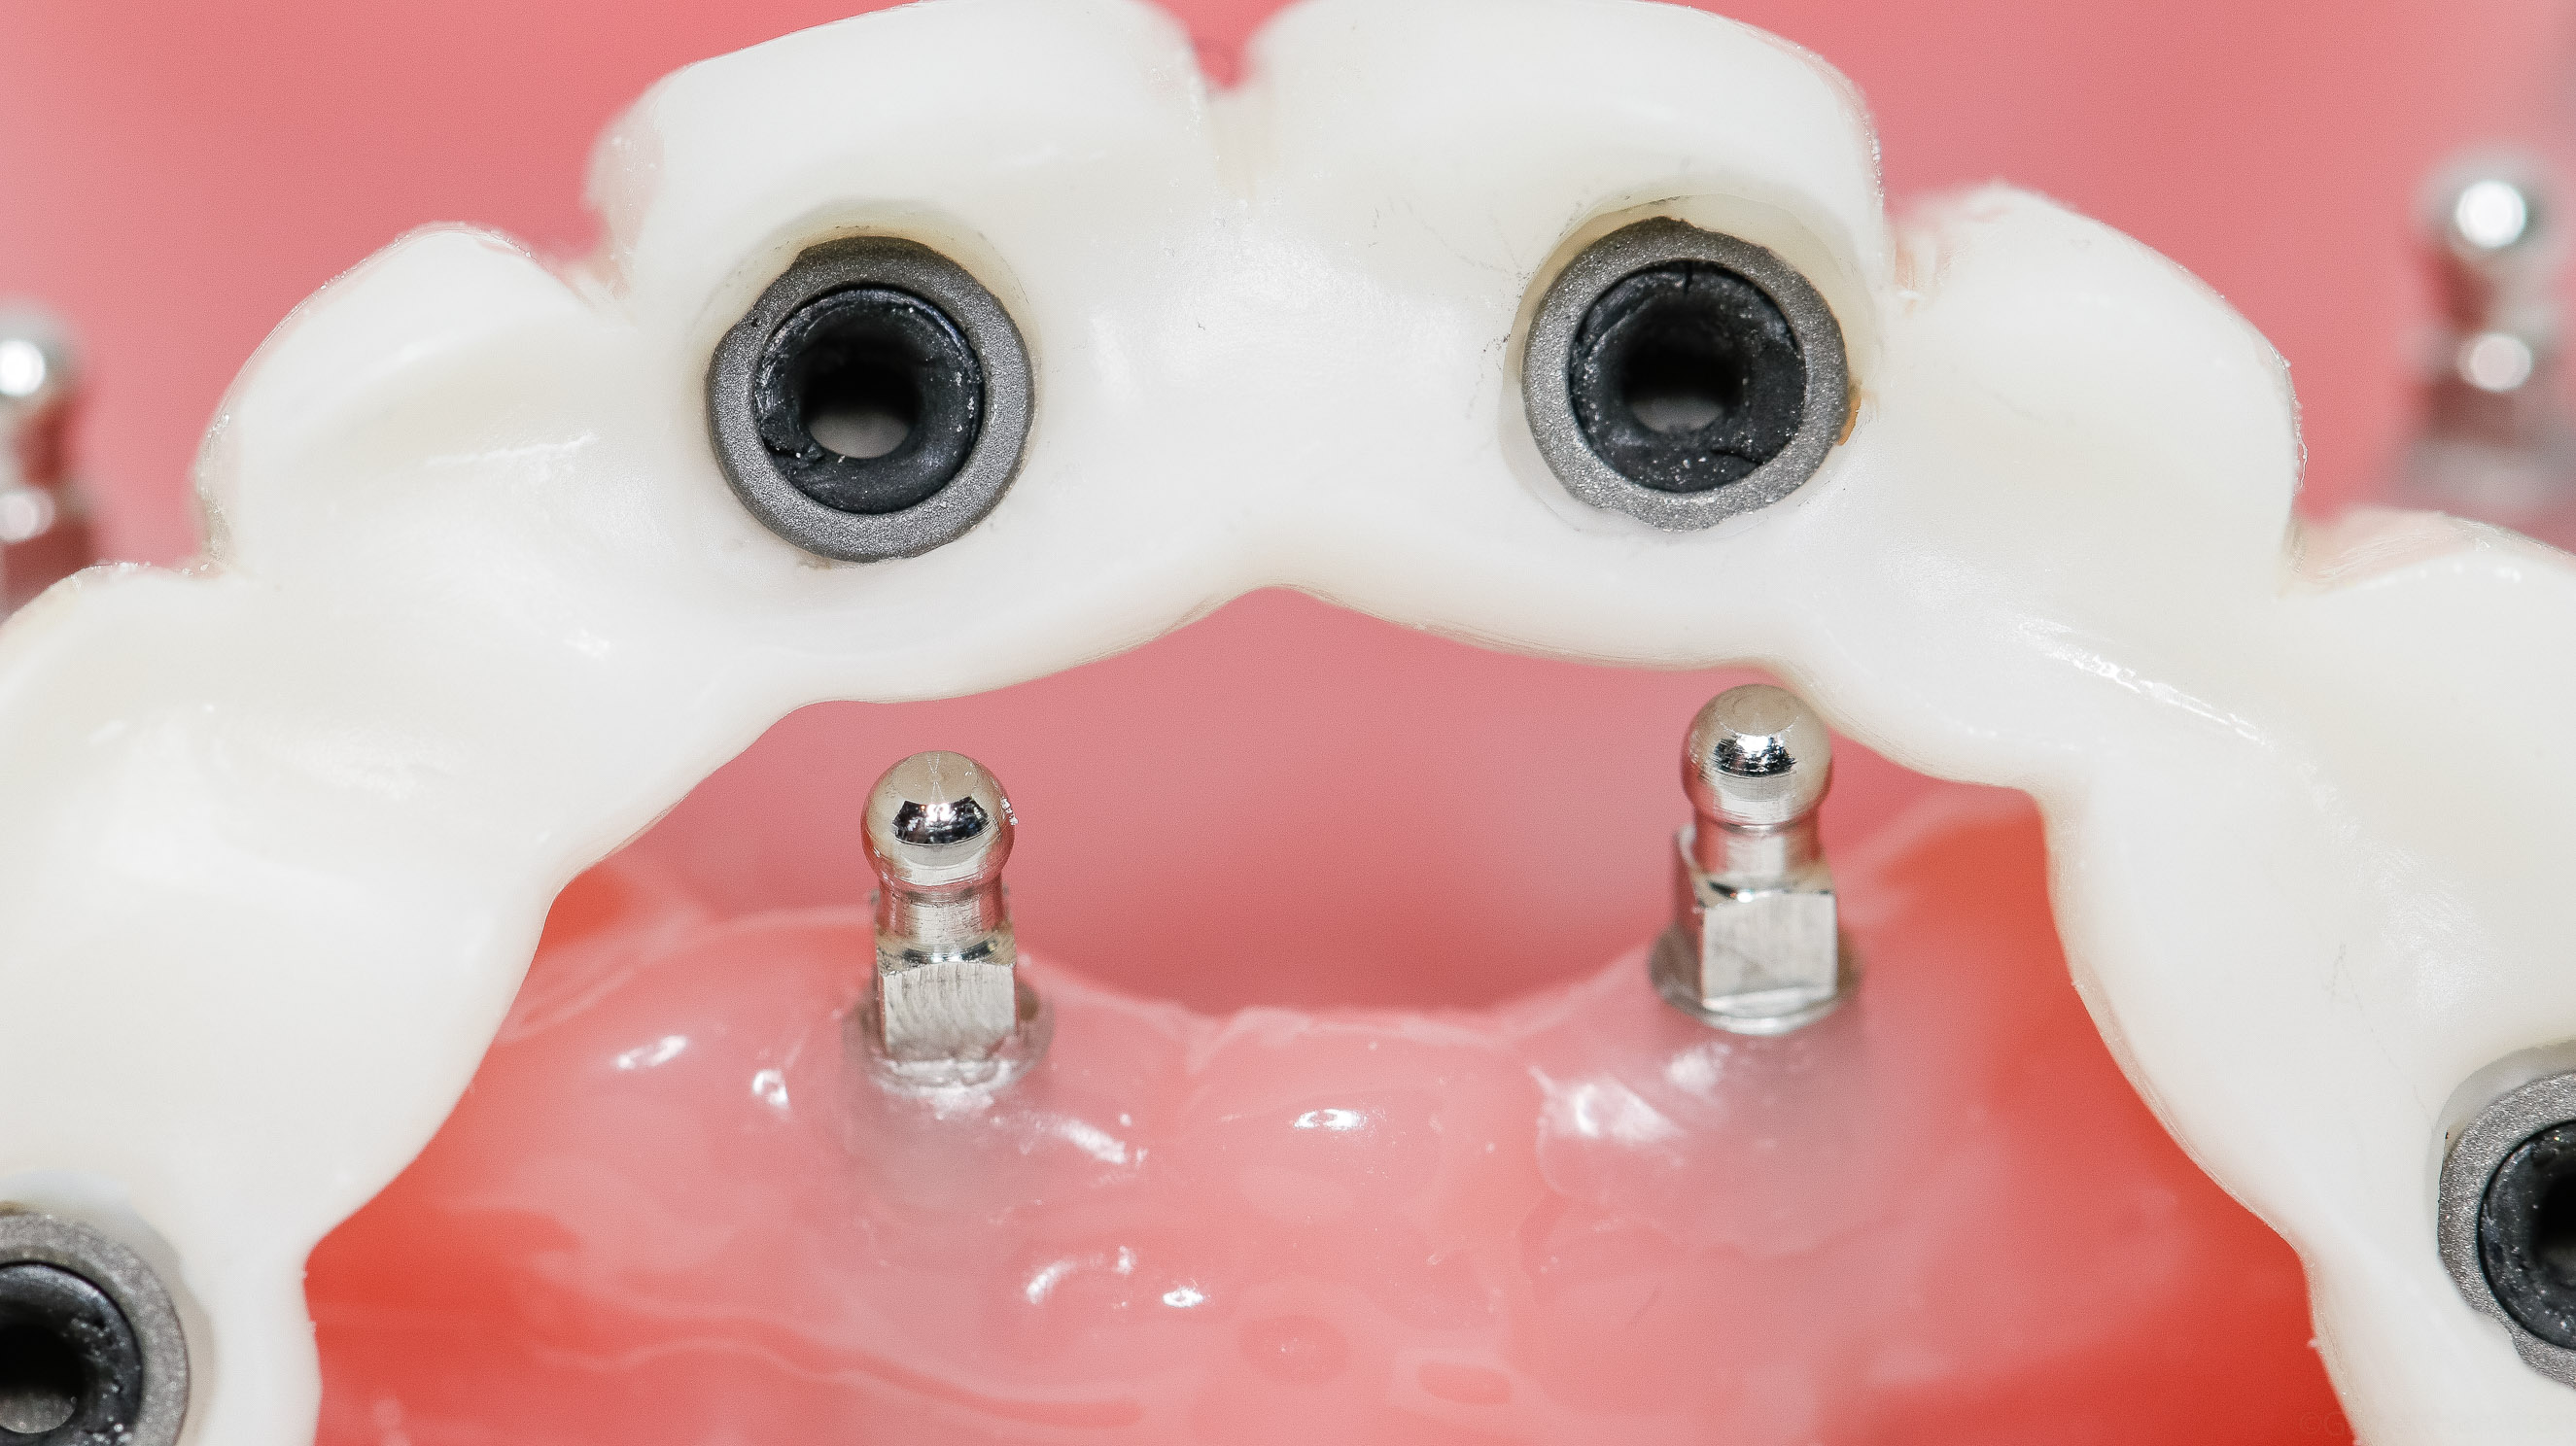 Mini Dental Implants Find A Mini Implant Dentist In Your